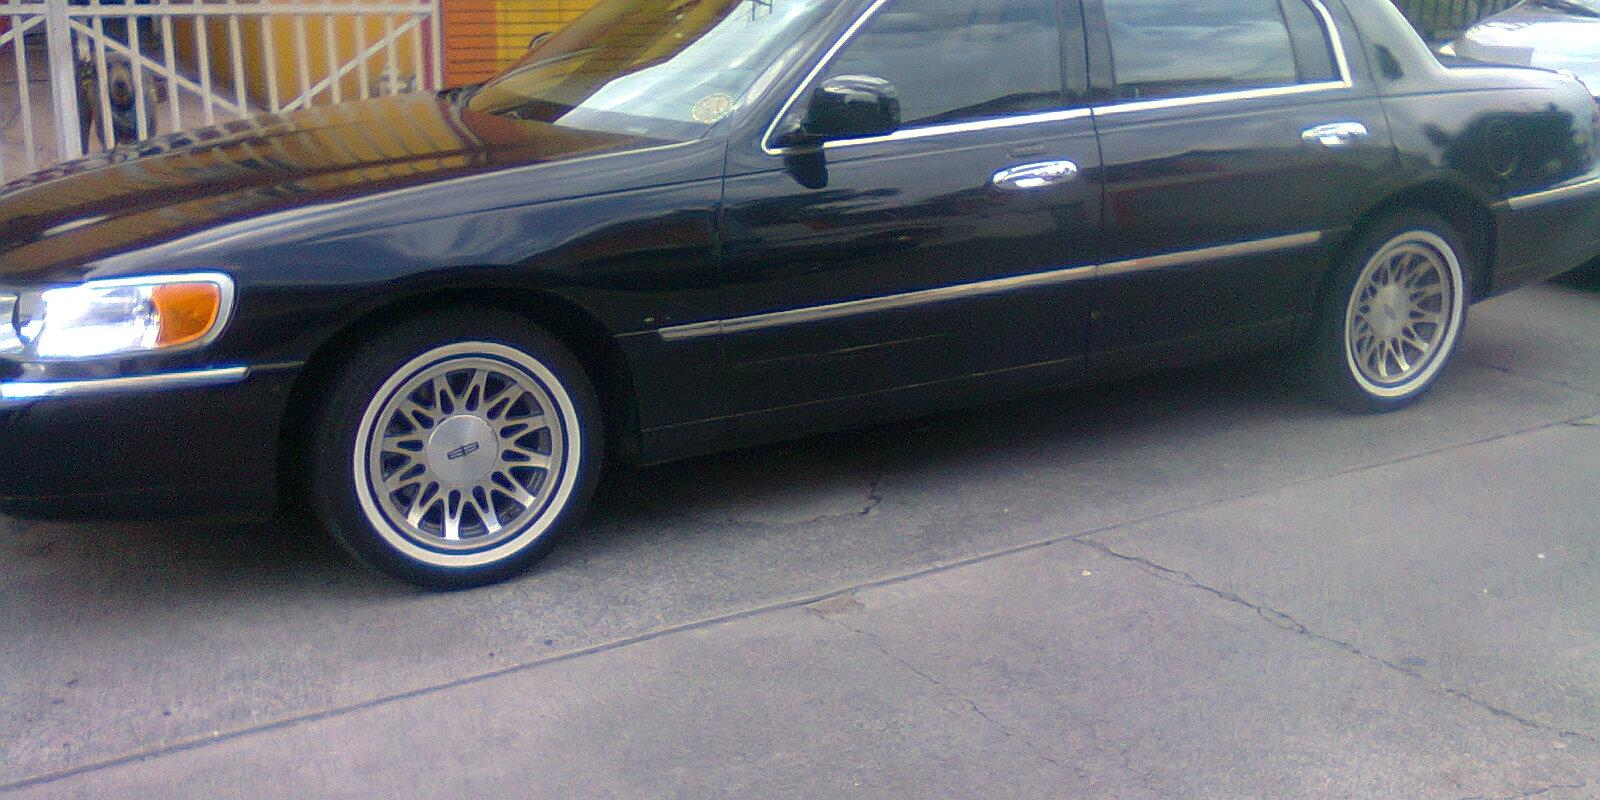 Lowrider 4 Lifes Profile In Locust Grove Va 1998 Lincoln Town Car 2001